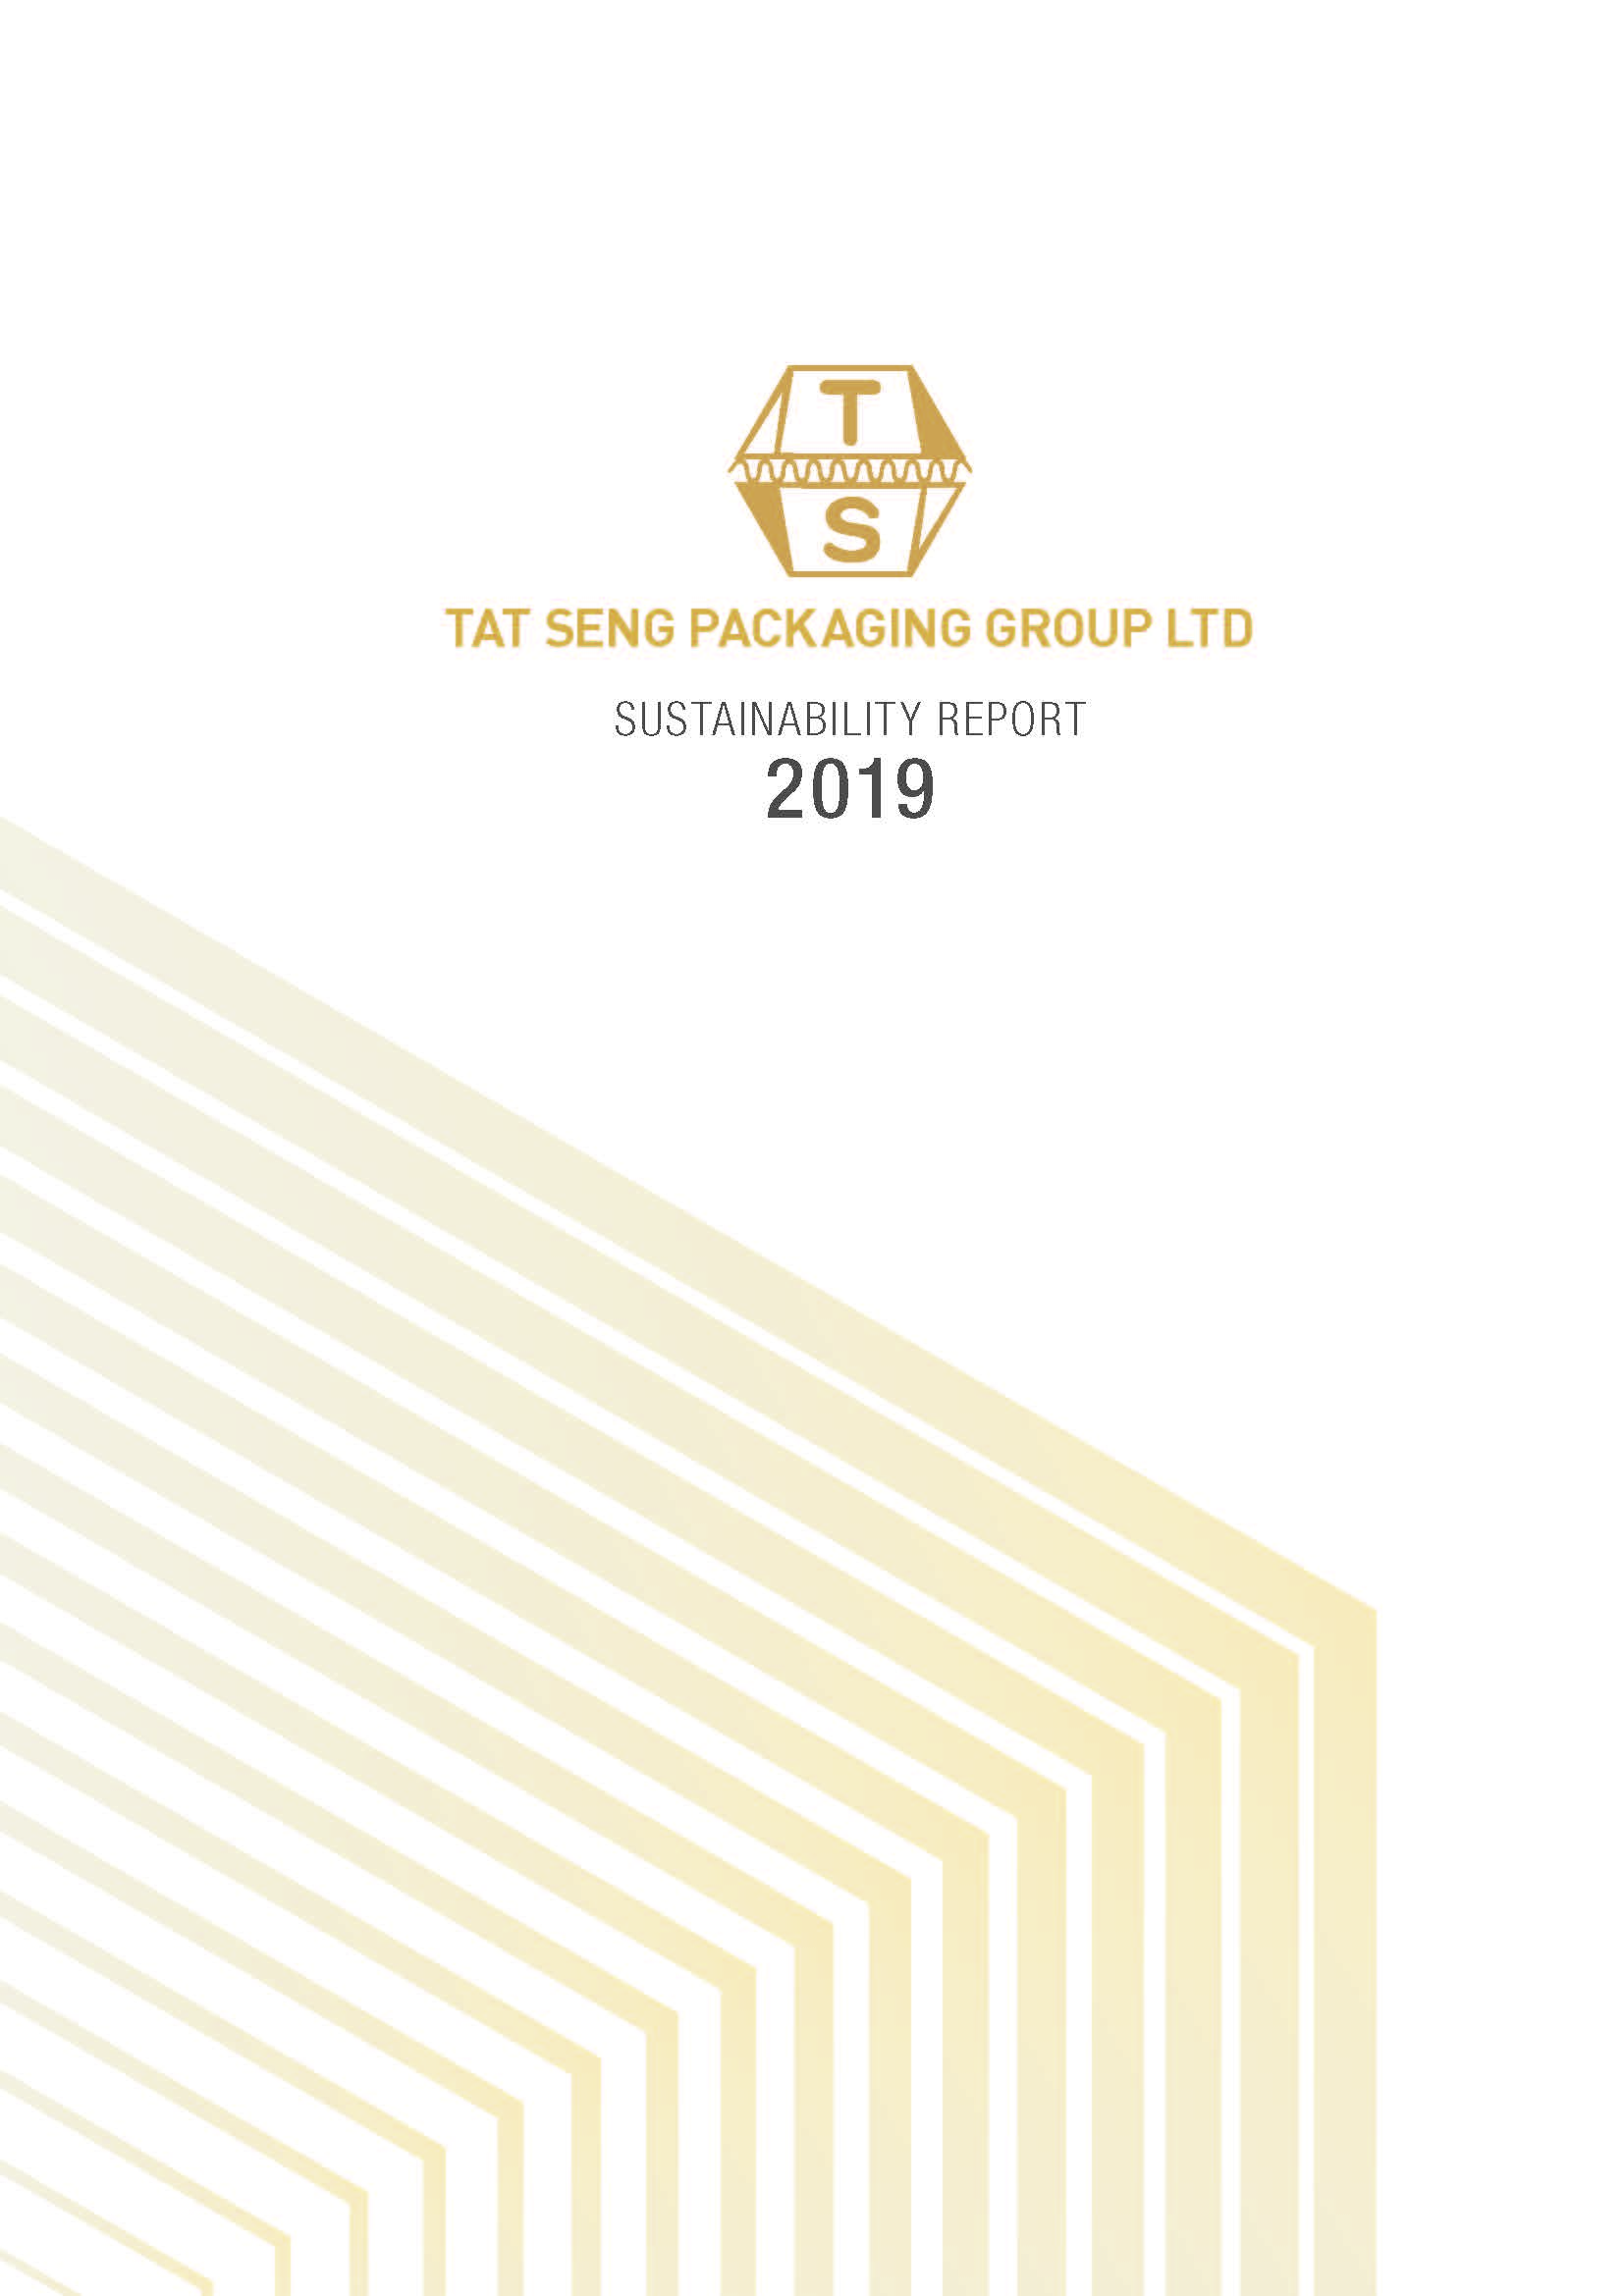 SR2019_coverpage Tat Seng Packaging Singapore - Sustainability Report